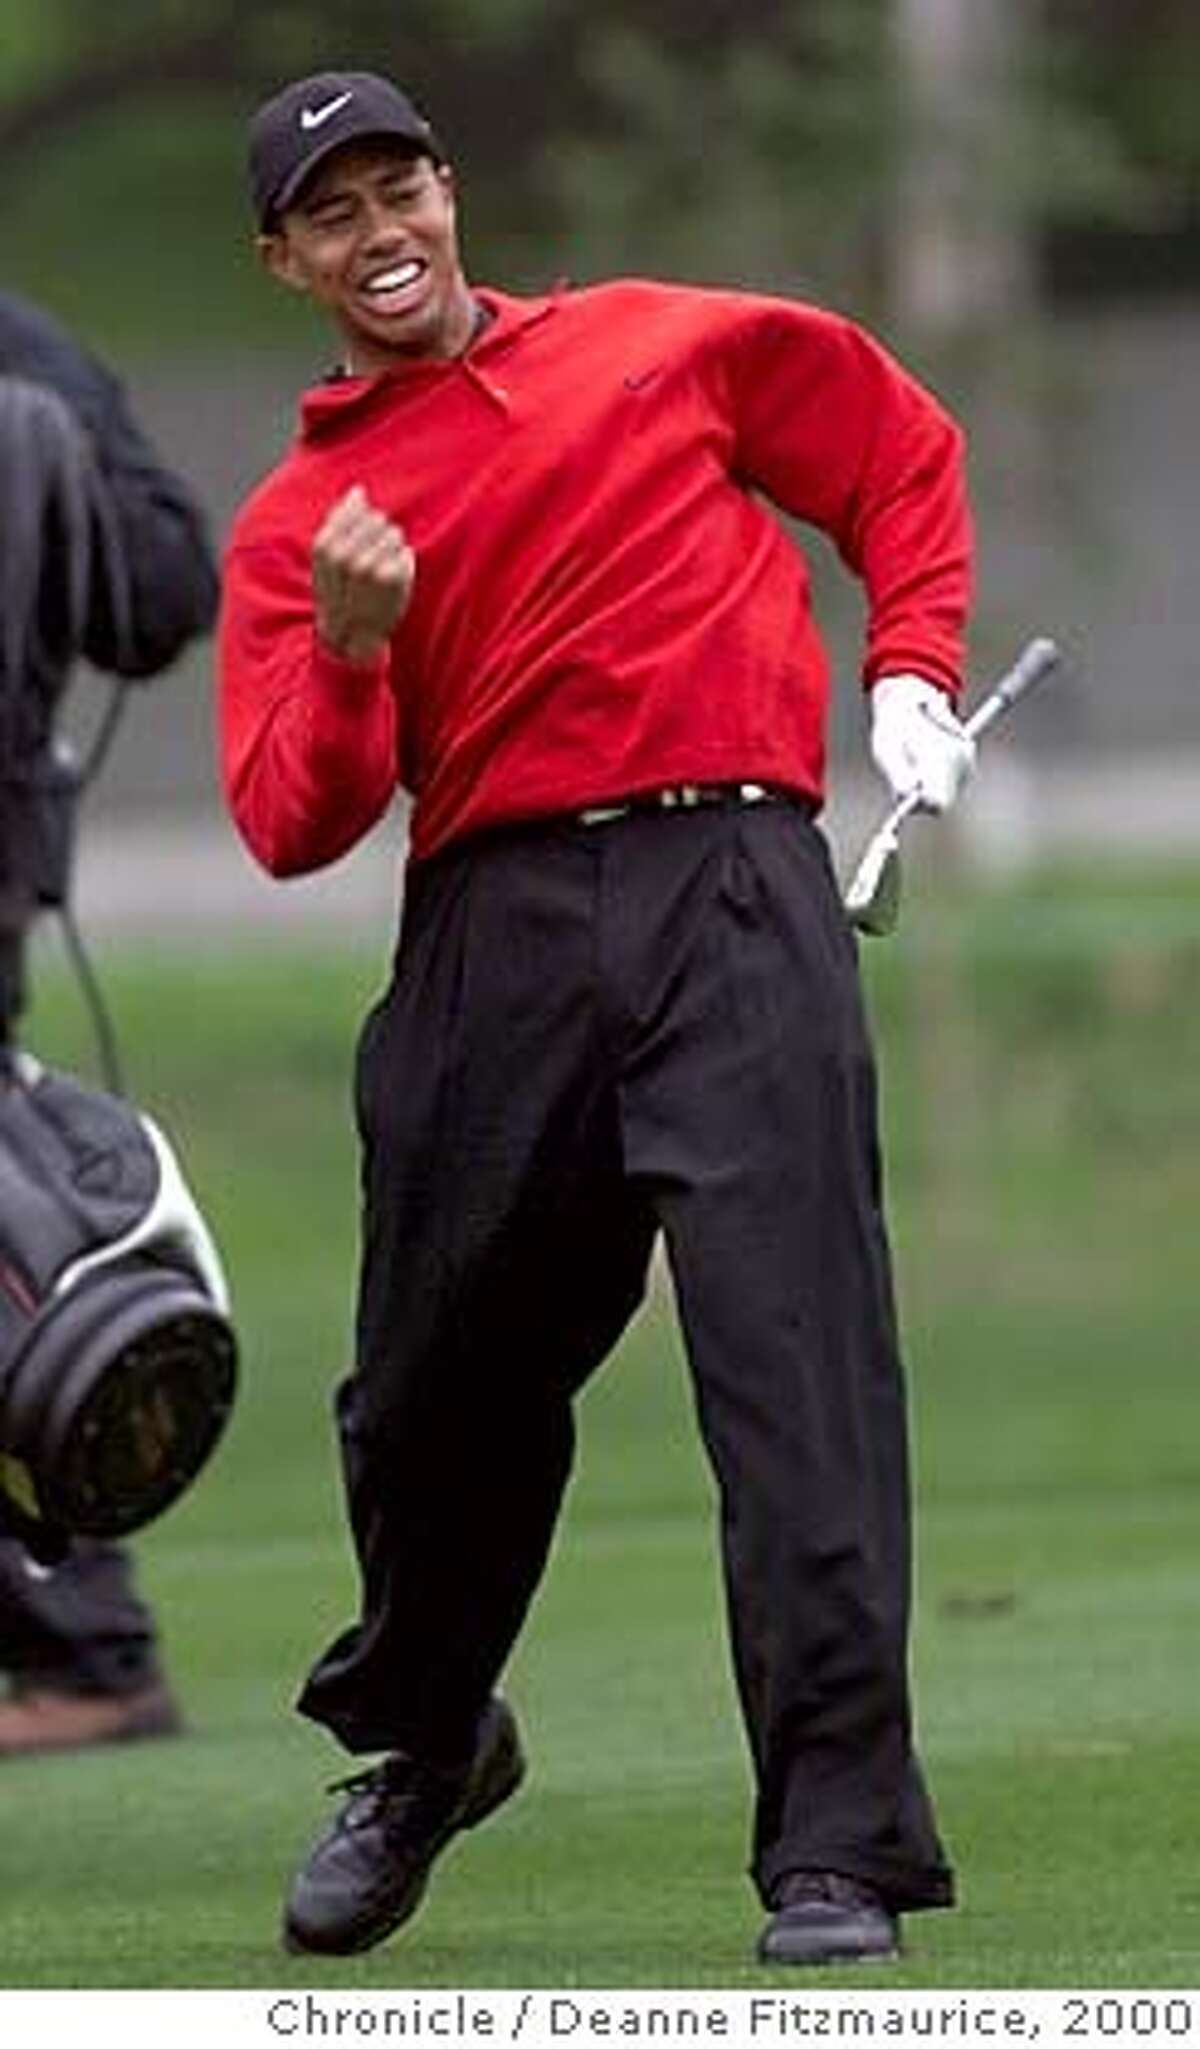 Tiger Woods reacts after holing a 97-yard wedge for an eagle on the 15th hole to lead the Pebble Beach National Pro-Am at Pebble Beach, Calif., February 7, 2000. Seven strokes behind with seven holes to play, Woods electrified an otherwise gray afternoon on the Monterey Peninsula with his comeback victory in the tournament. (AP Photo/The San Francisco Chronicle, Deanne Fitzmaurice) ALSO RAN: 01/31/2001, 03/27/03 (3-Star) CAT